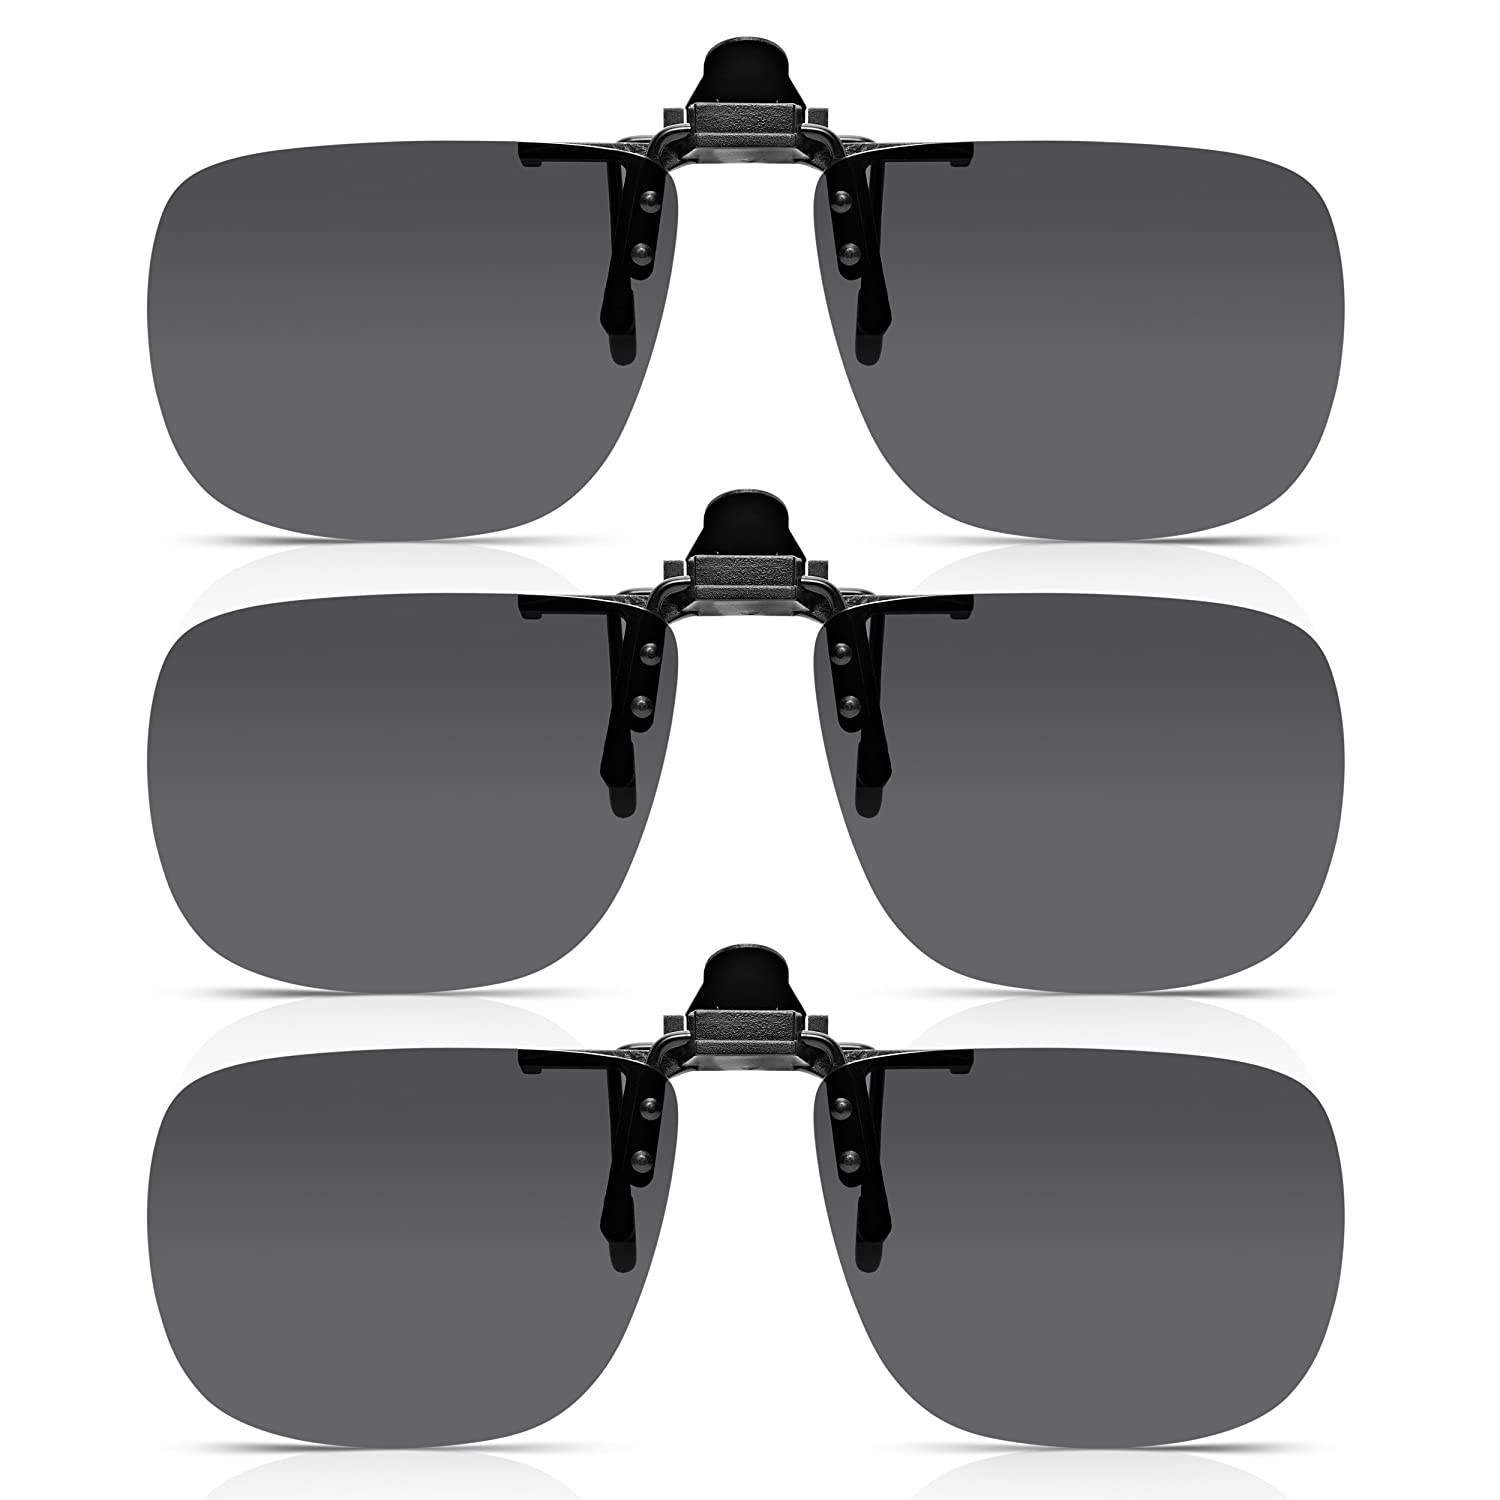 Read Optics x3 Pack de Clip-On Sunglasses: Gafas de Sol con Flip-Up para Gafas Graduadas de Hombre y Mujer. Lentes Polarizadas UV400 Protección 100% UV - en ...